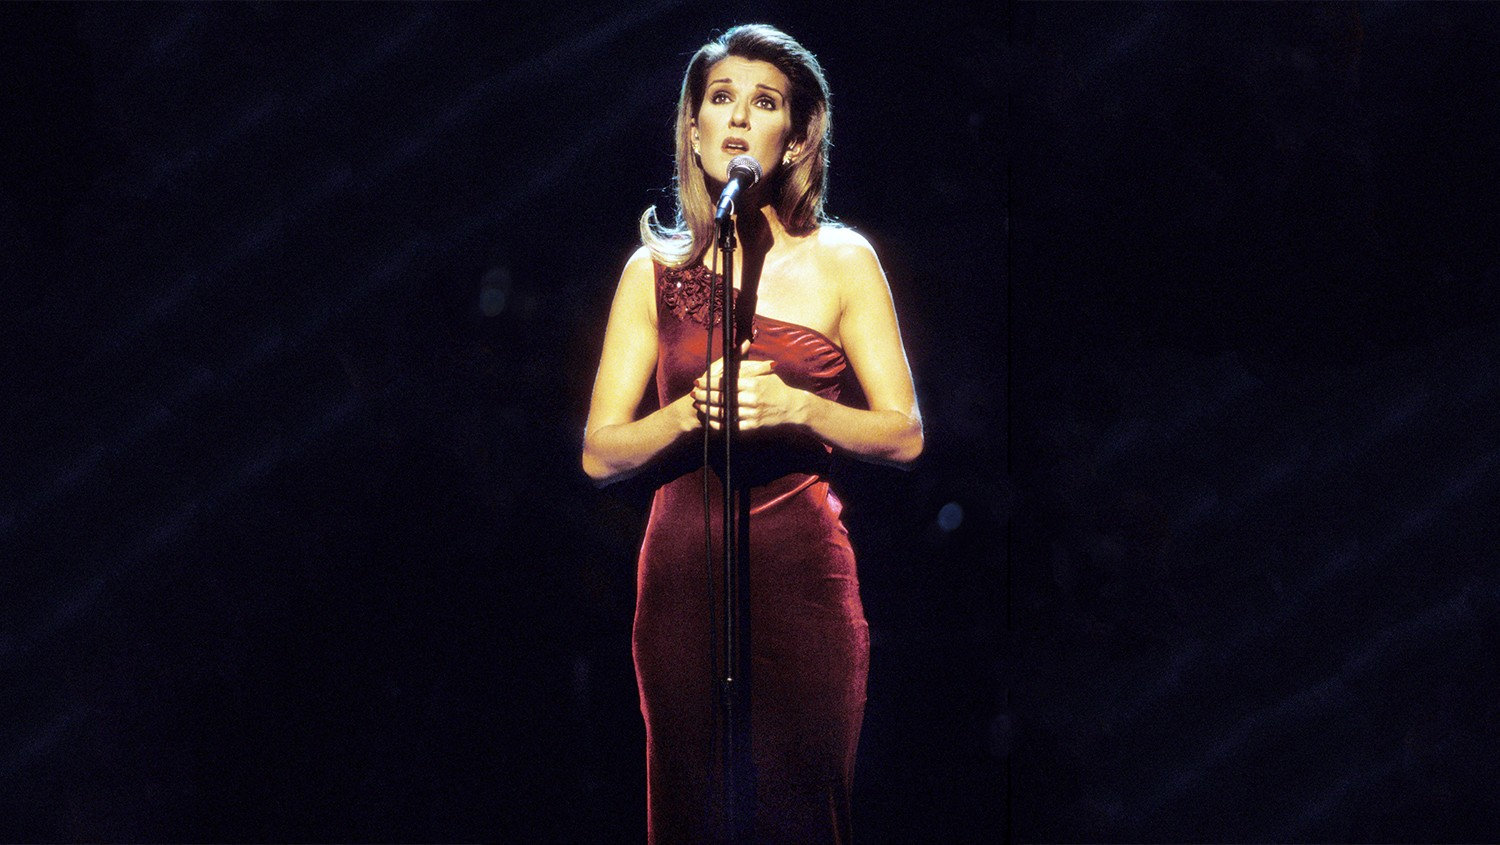 Celine Dion performs on 'A Gift of Song' in New York City in 1997.